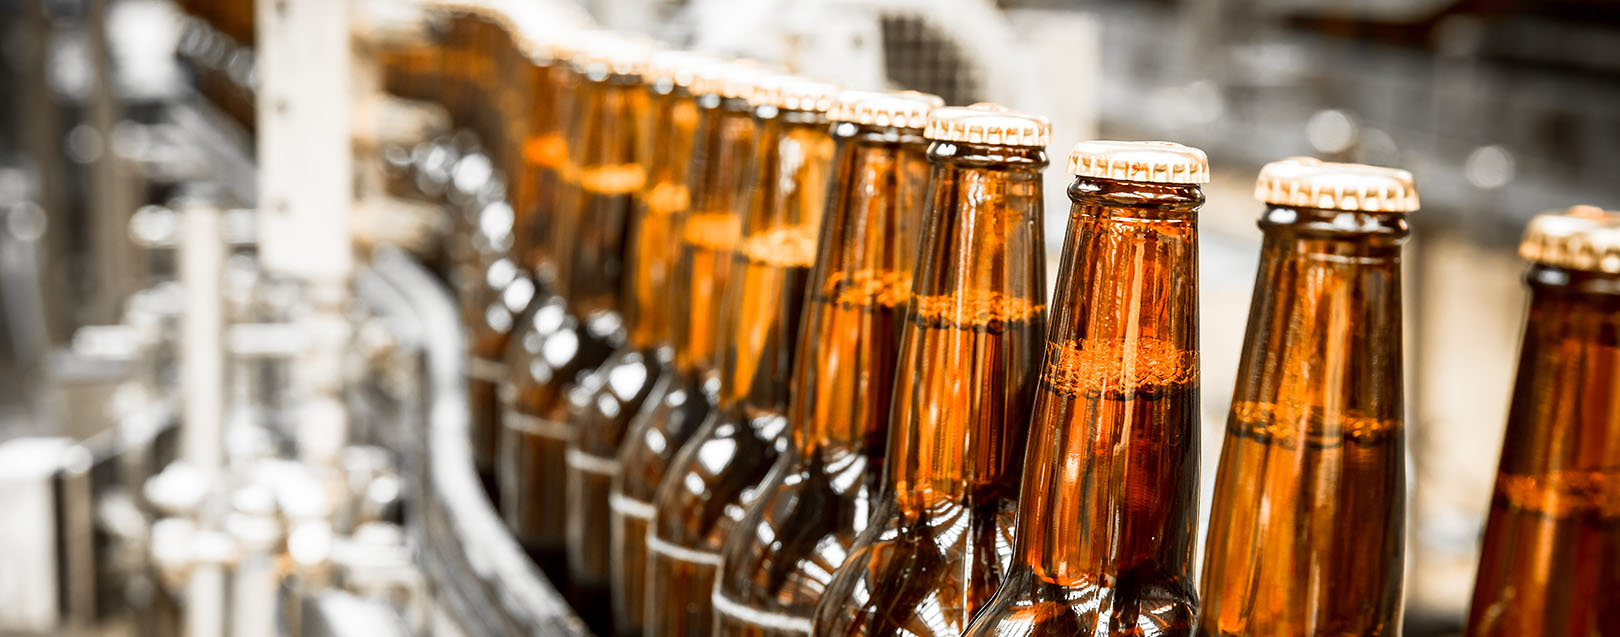 Beer industry to grow at 7 5 between 2017 and 2021 for Craft beer industry statistics